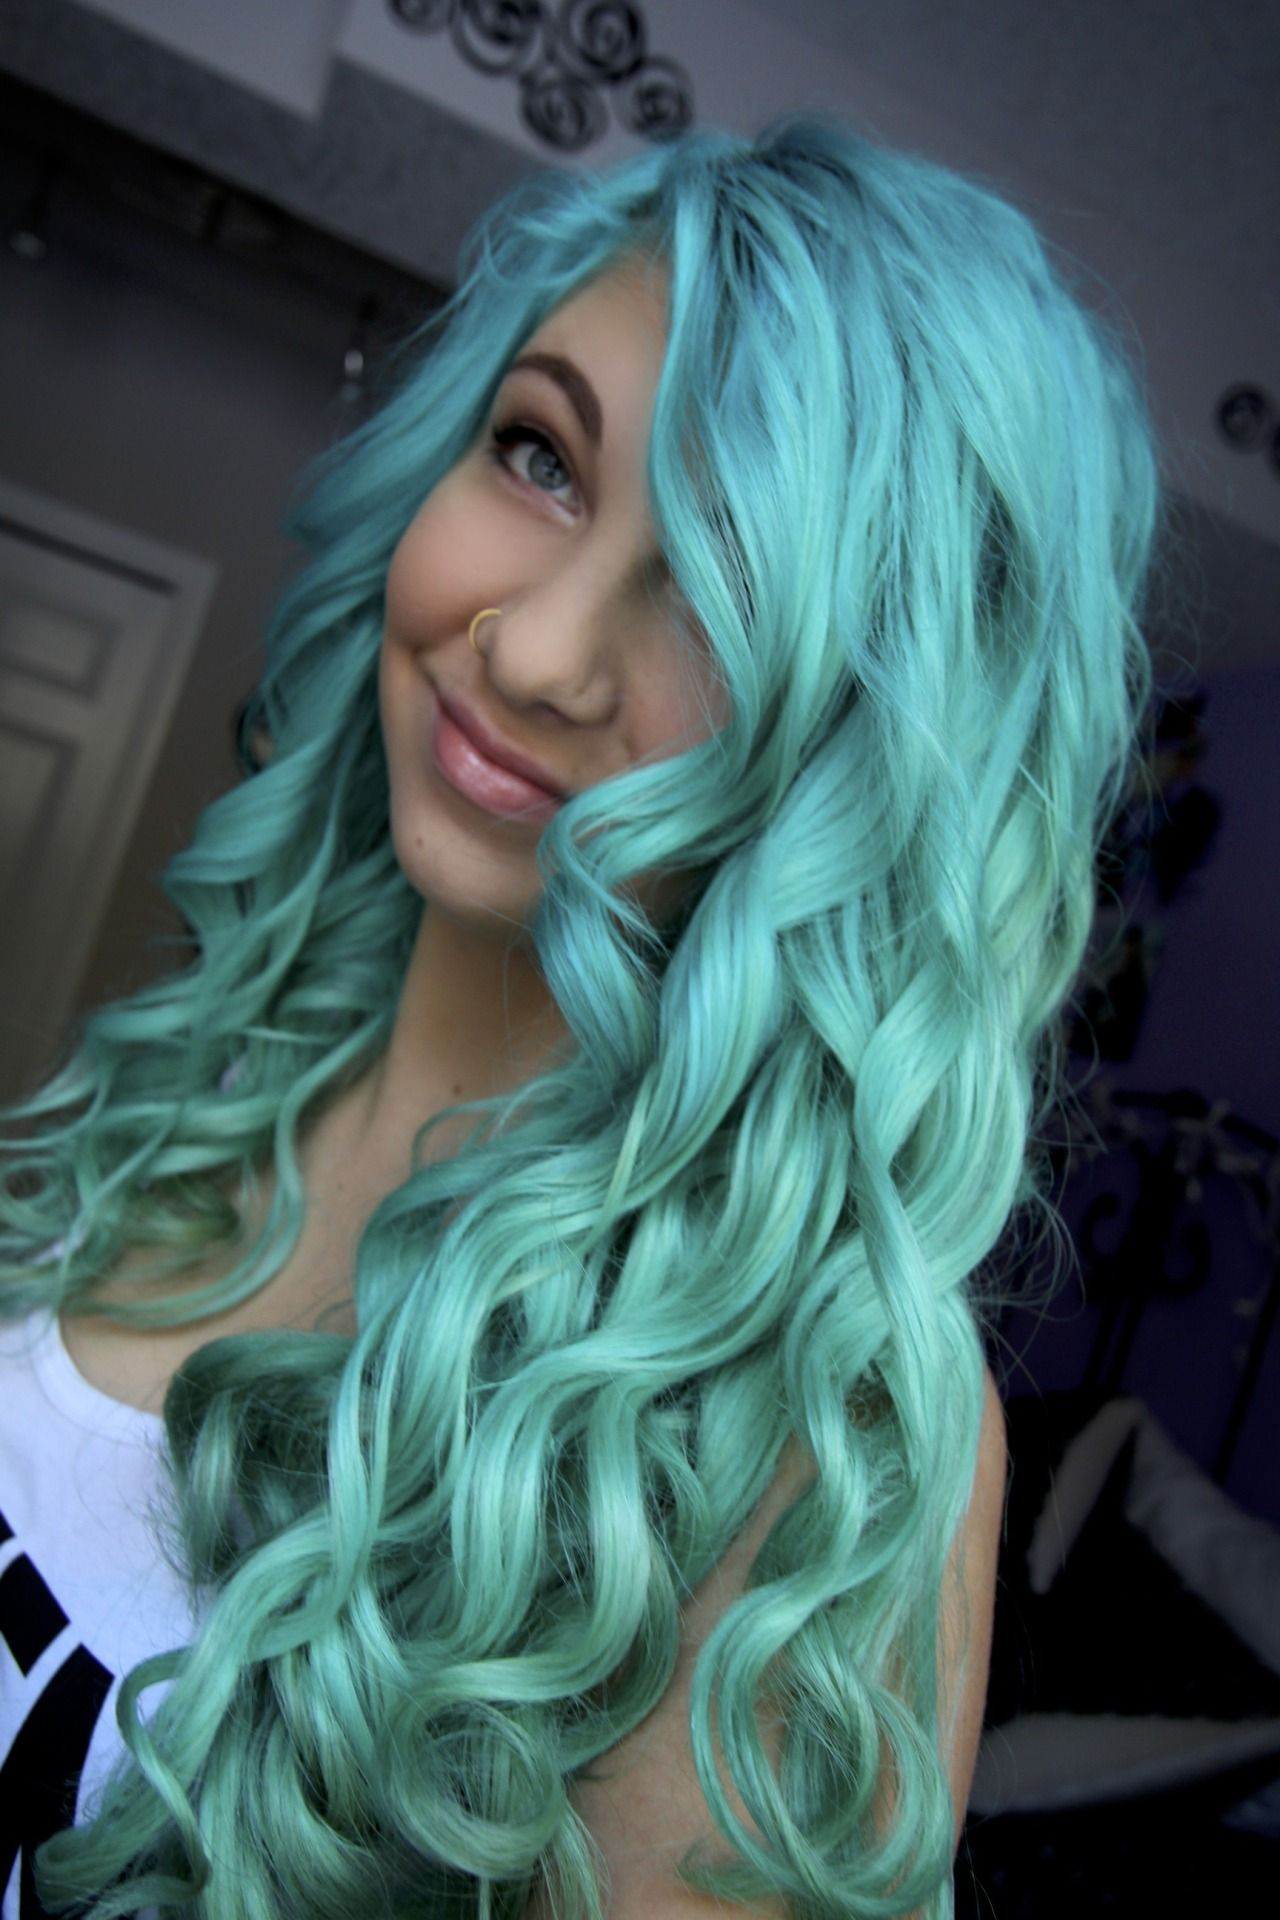 Fuck yeah dyed hair photo her hair is gorgeous hair and